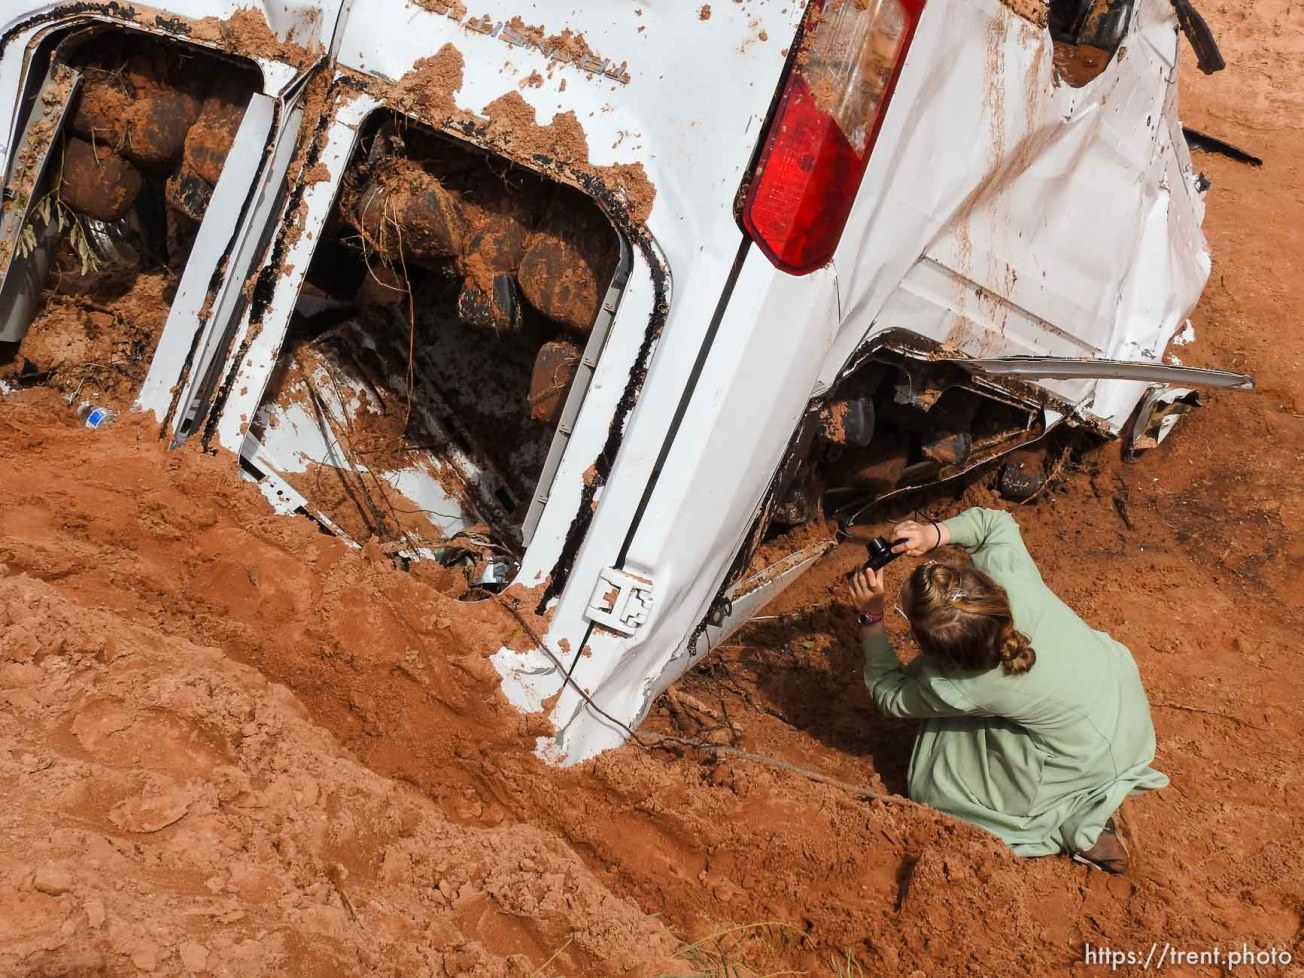 Trent Nelson | The Salt Lake Tribune People take in the scene in a Hildale wash where a flash flood killed nine people (with four still missing) Tuesday September 15, 2015., the day after an SUV and a van were washed off a road during a flash flood in this polygamous Utah-Arizona border community.